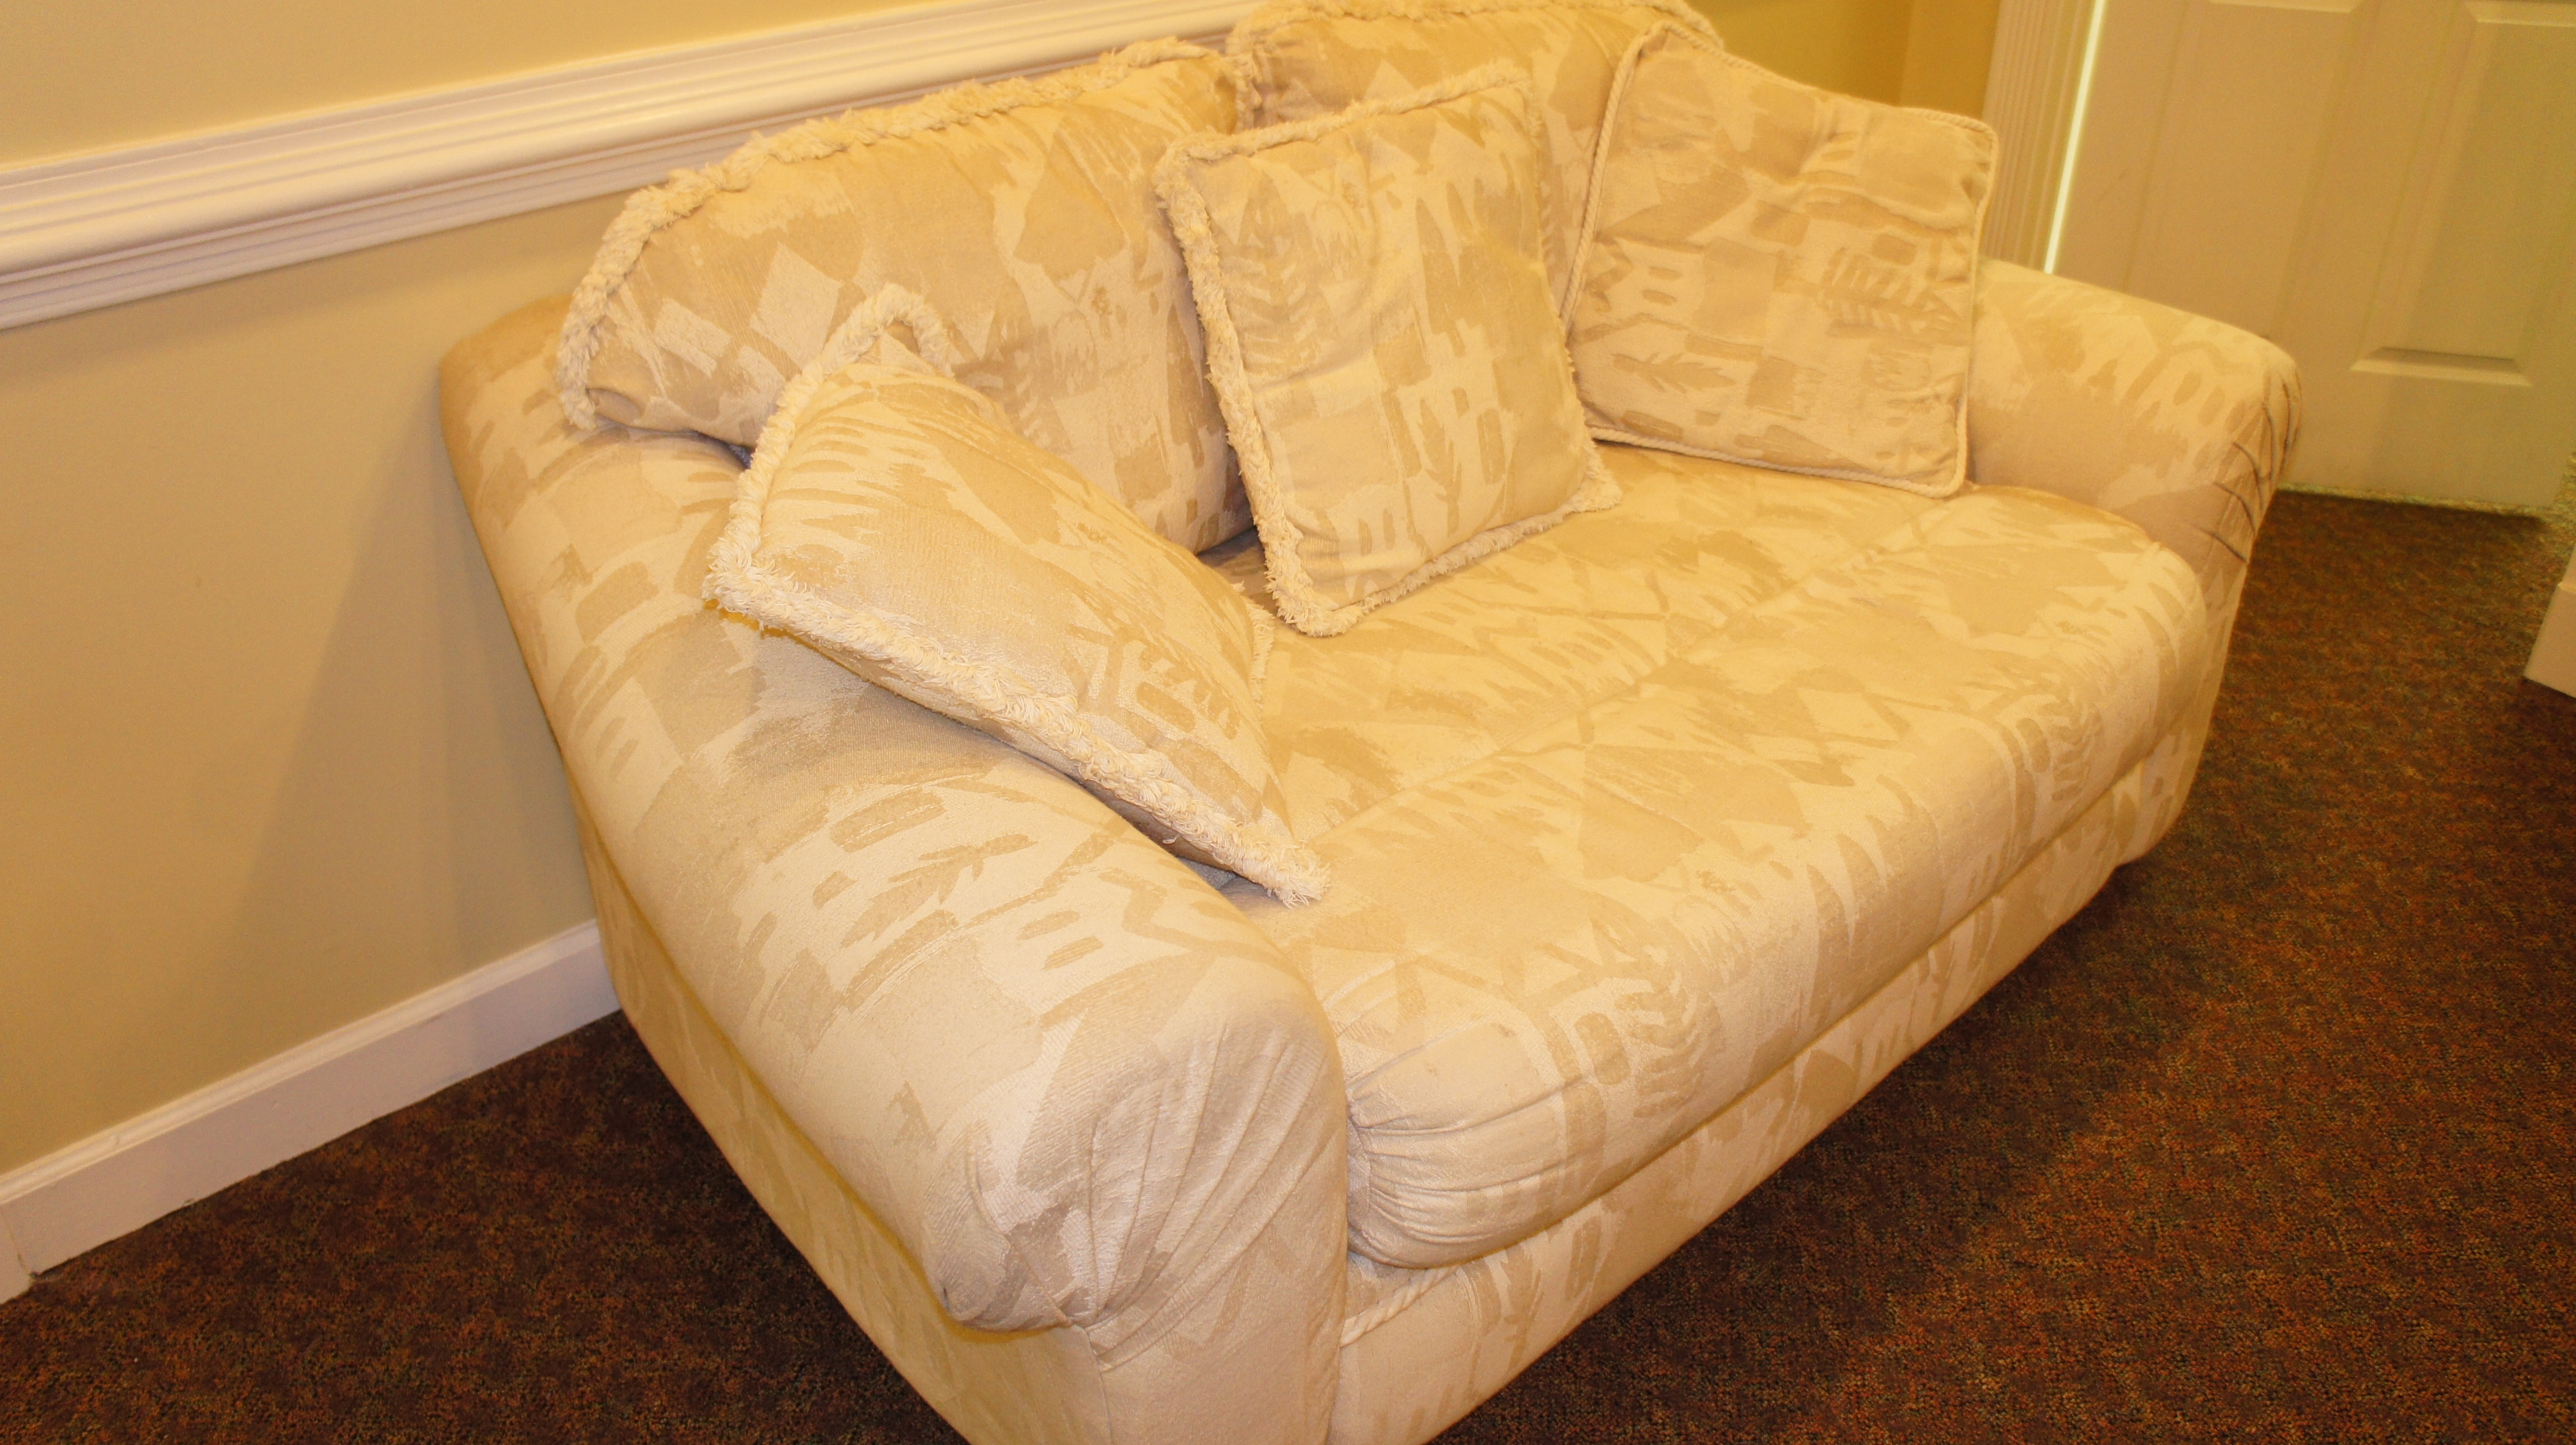 sofa liquidation sale comfortable bed ikea office couch loveseat and glass coffee table set alan